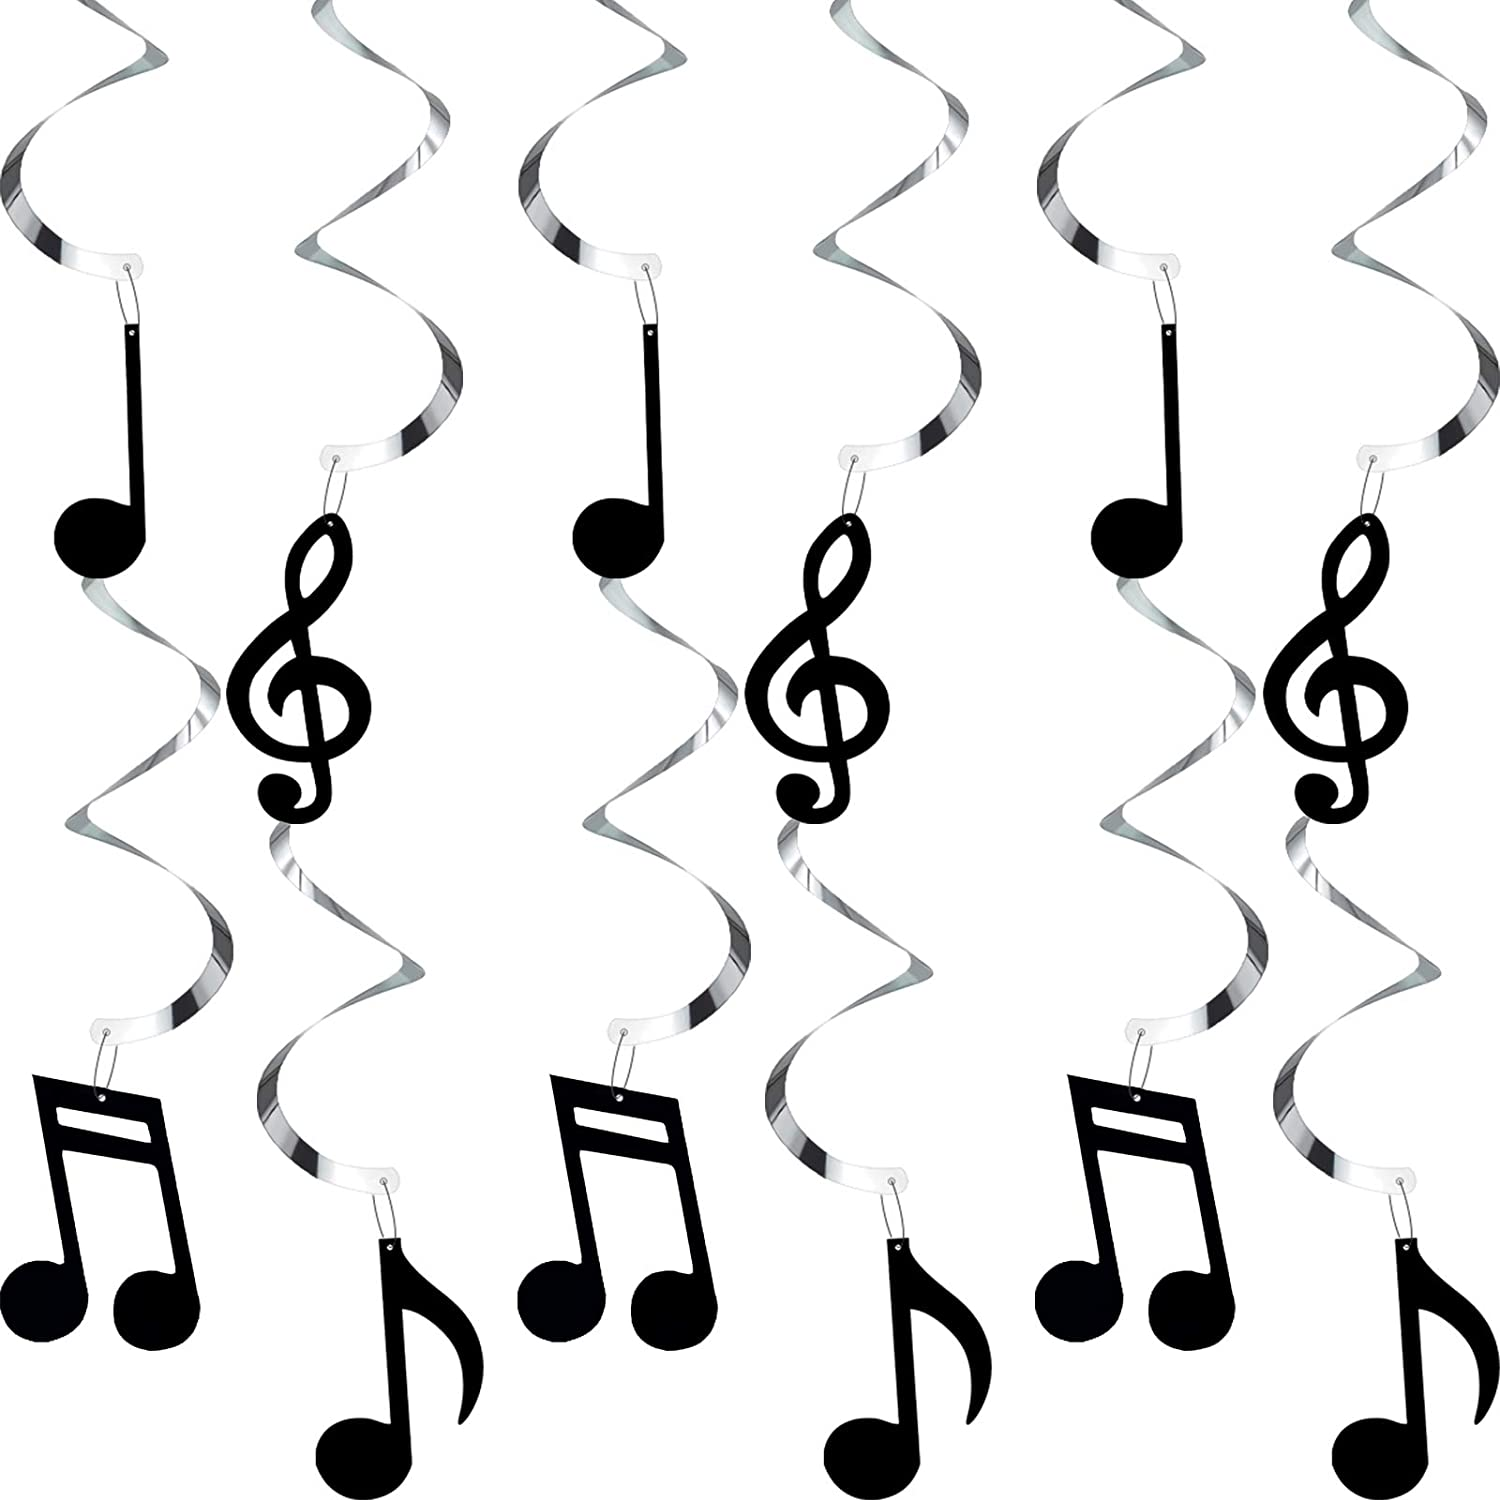 Zonon 25 Pieces Musical Note Hanging Swirl Music Foil Whirl Theme Party Decoration Cutout Spiral for Wedding Baby Shower Birthday Party Supplies (Black)